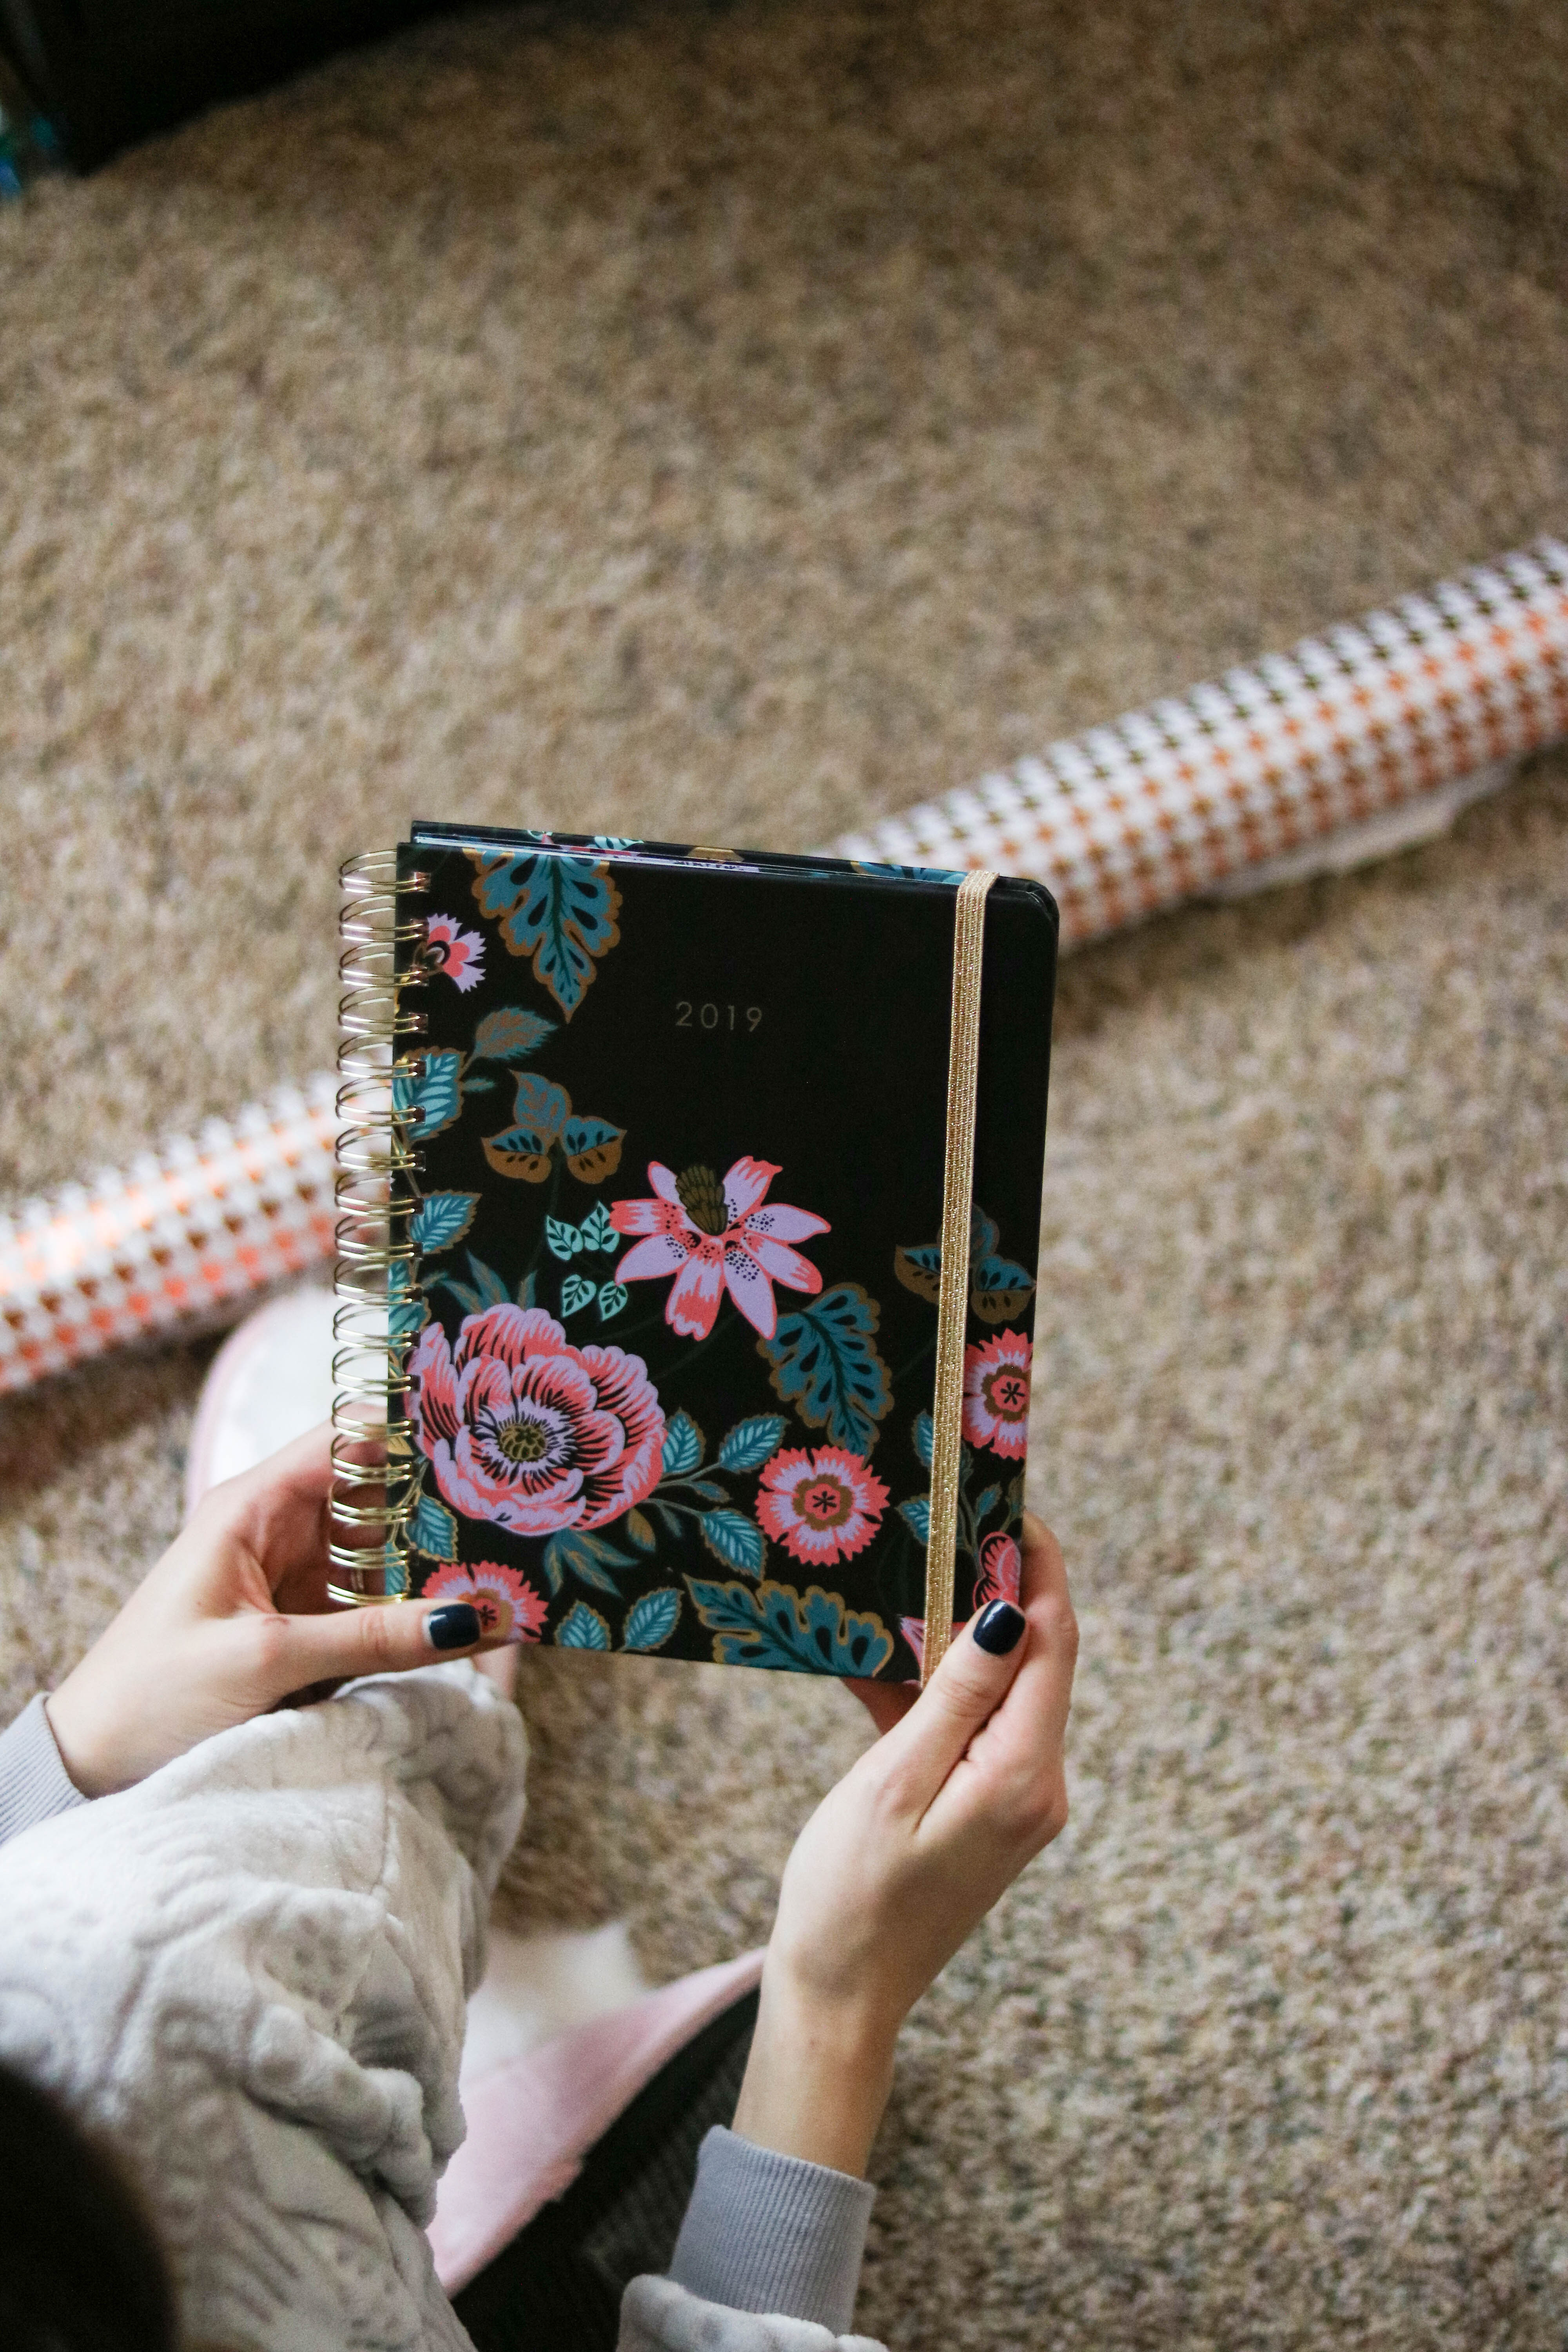 GIFT GUIDE: A Vera Bradley Christmas - Vera Bradley gifts for every lady on your list! on Coming Up Roses